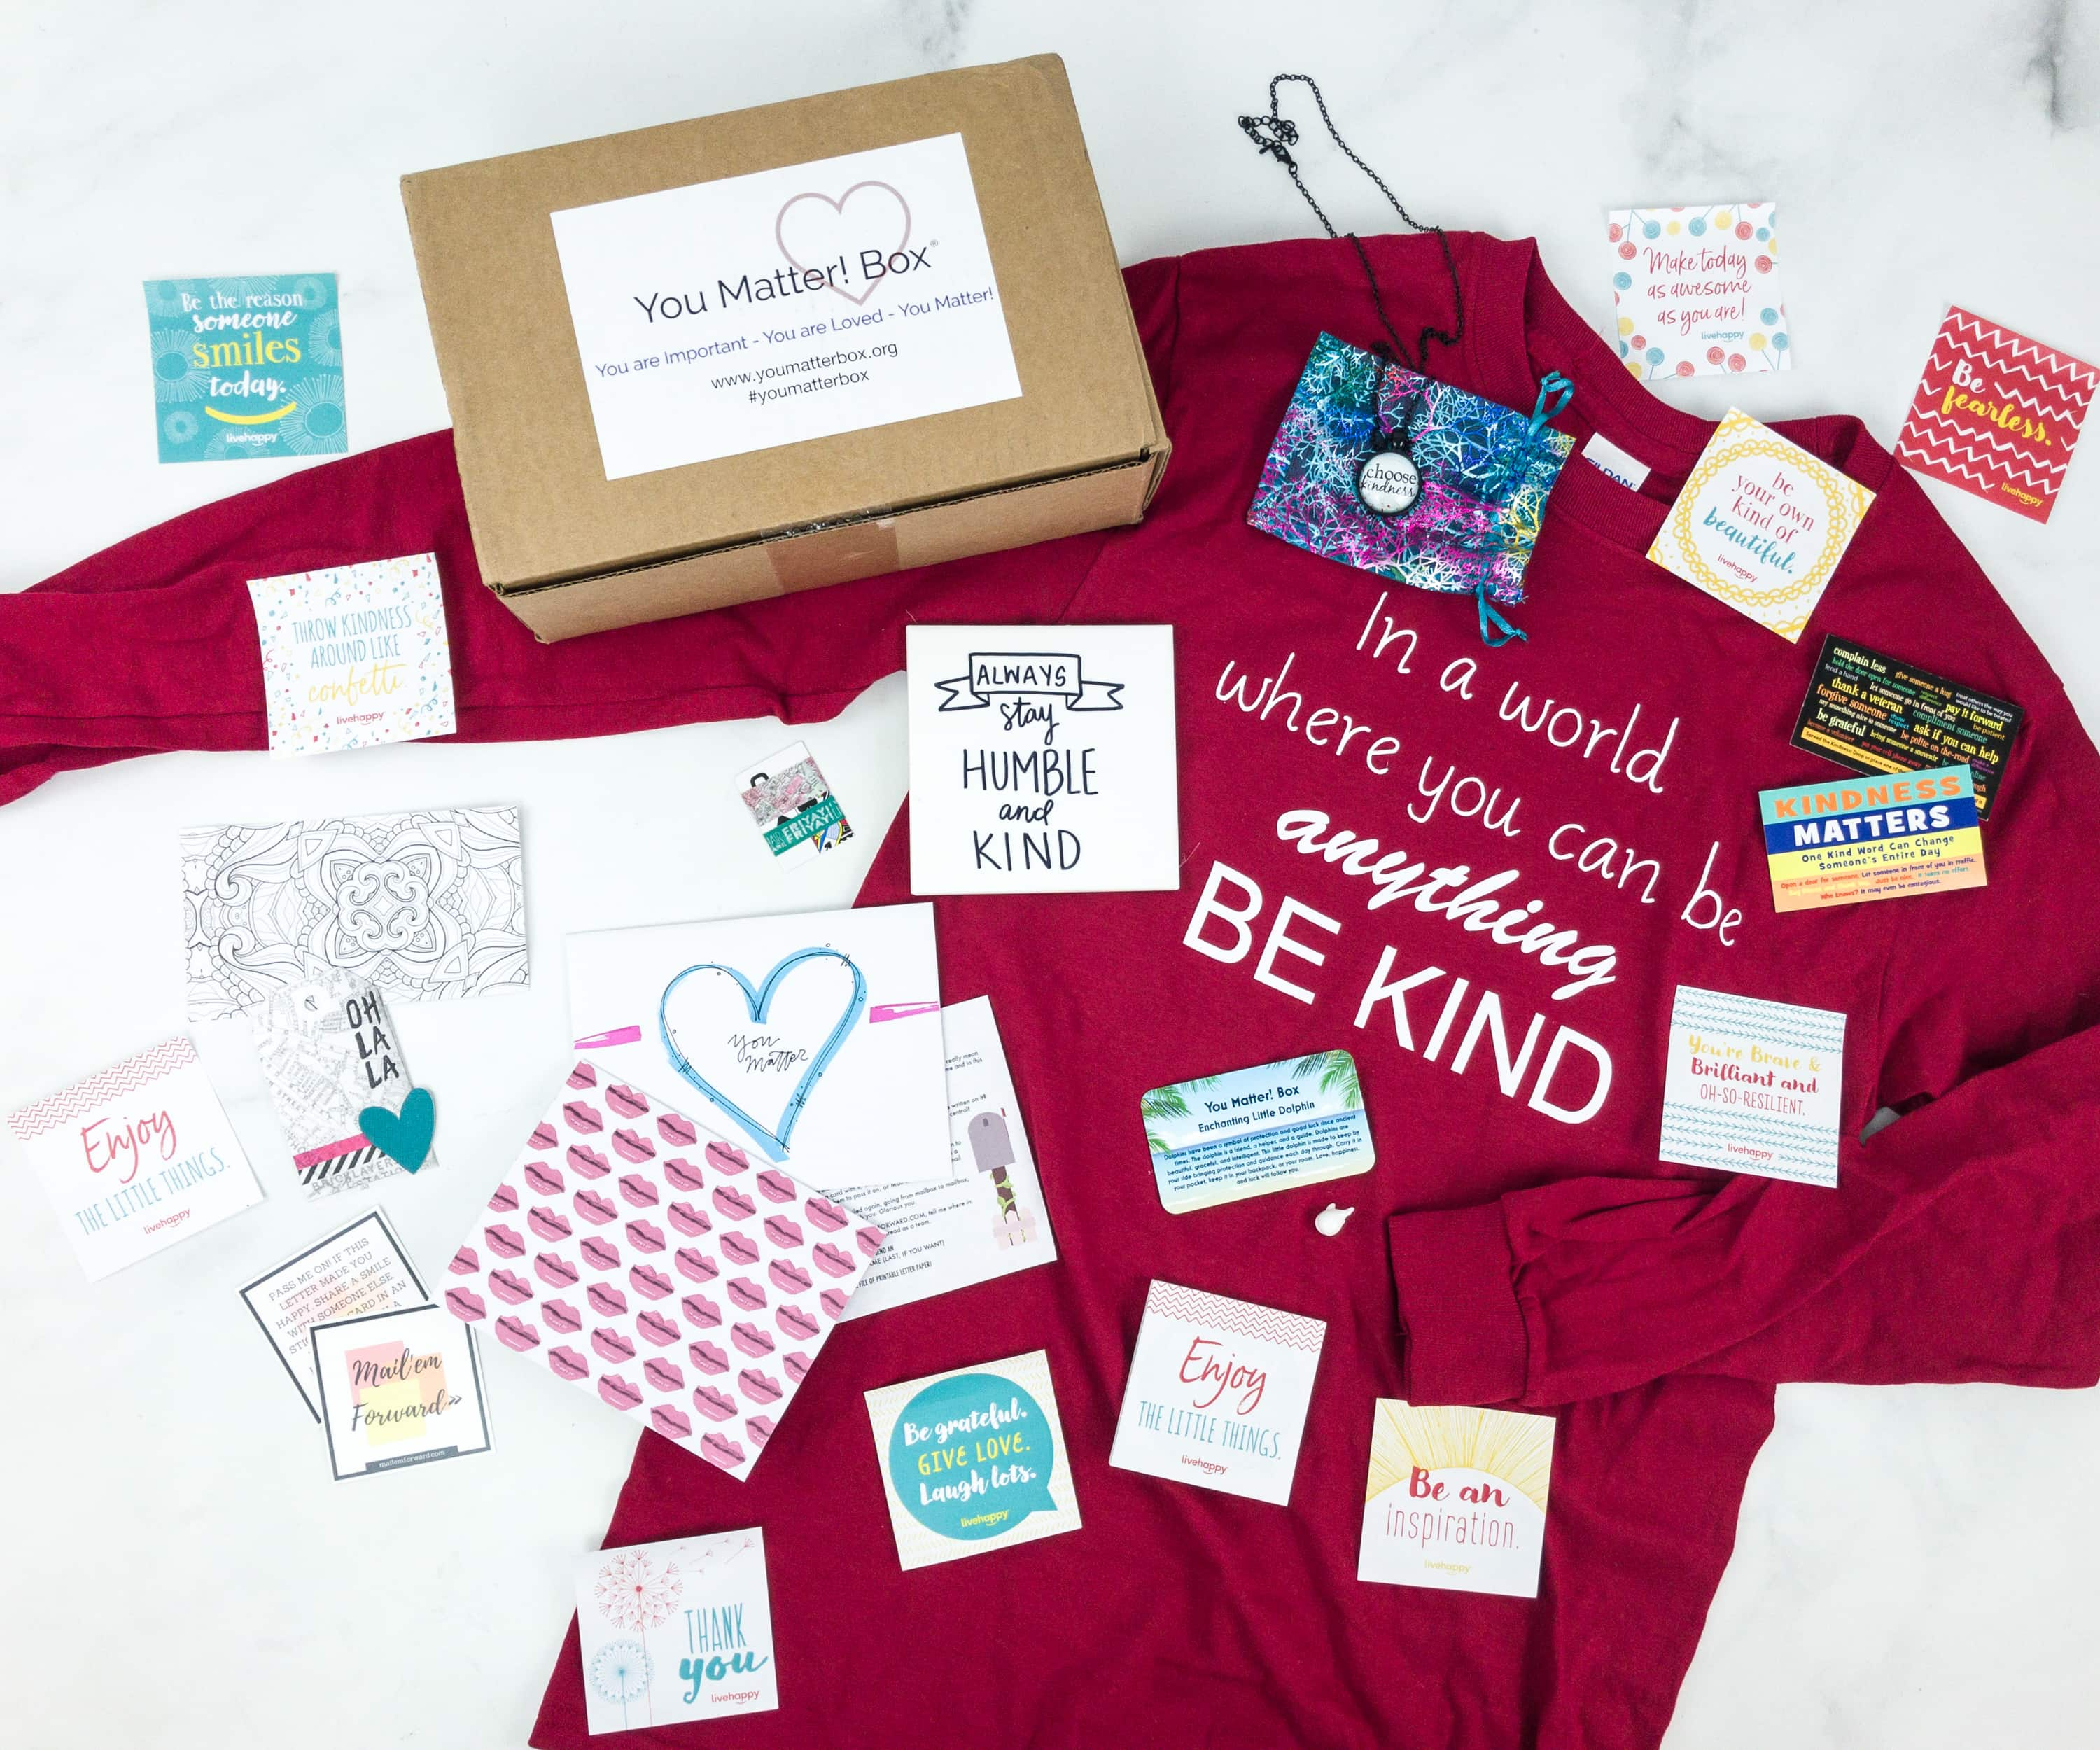 You Matter Box February 2019 Subscription Box Review